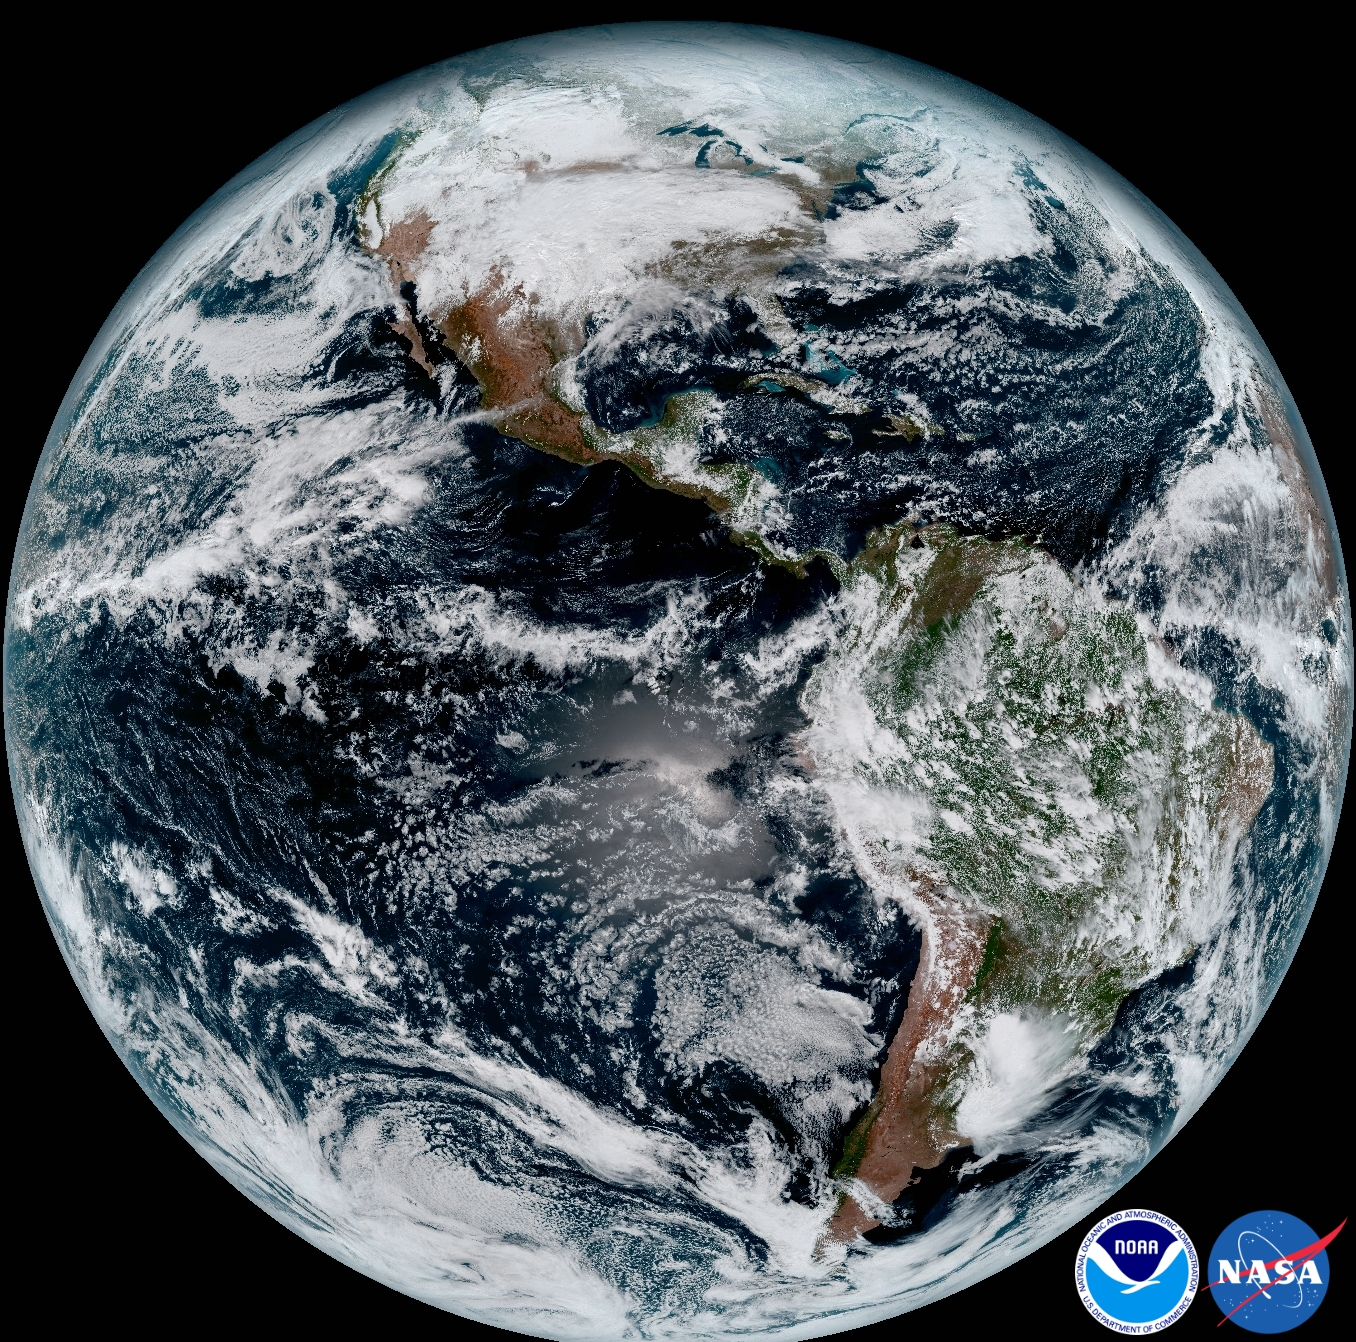 New Weather Satellite Sends First Images Of Earth NASA - Live earth view through satellite